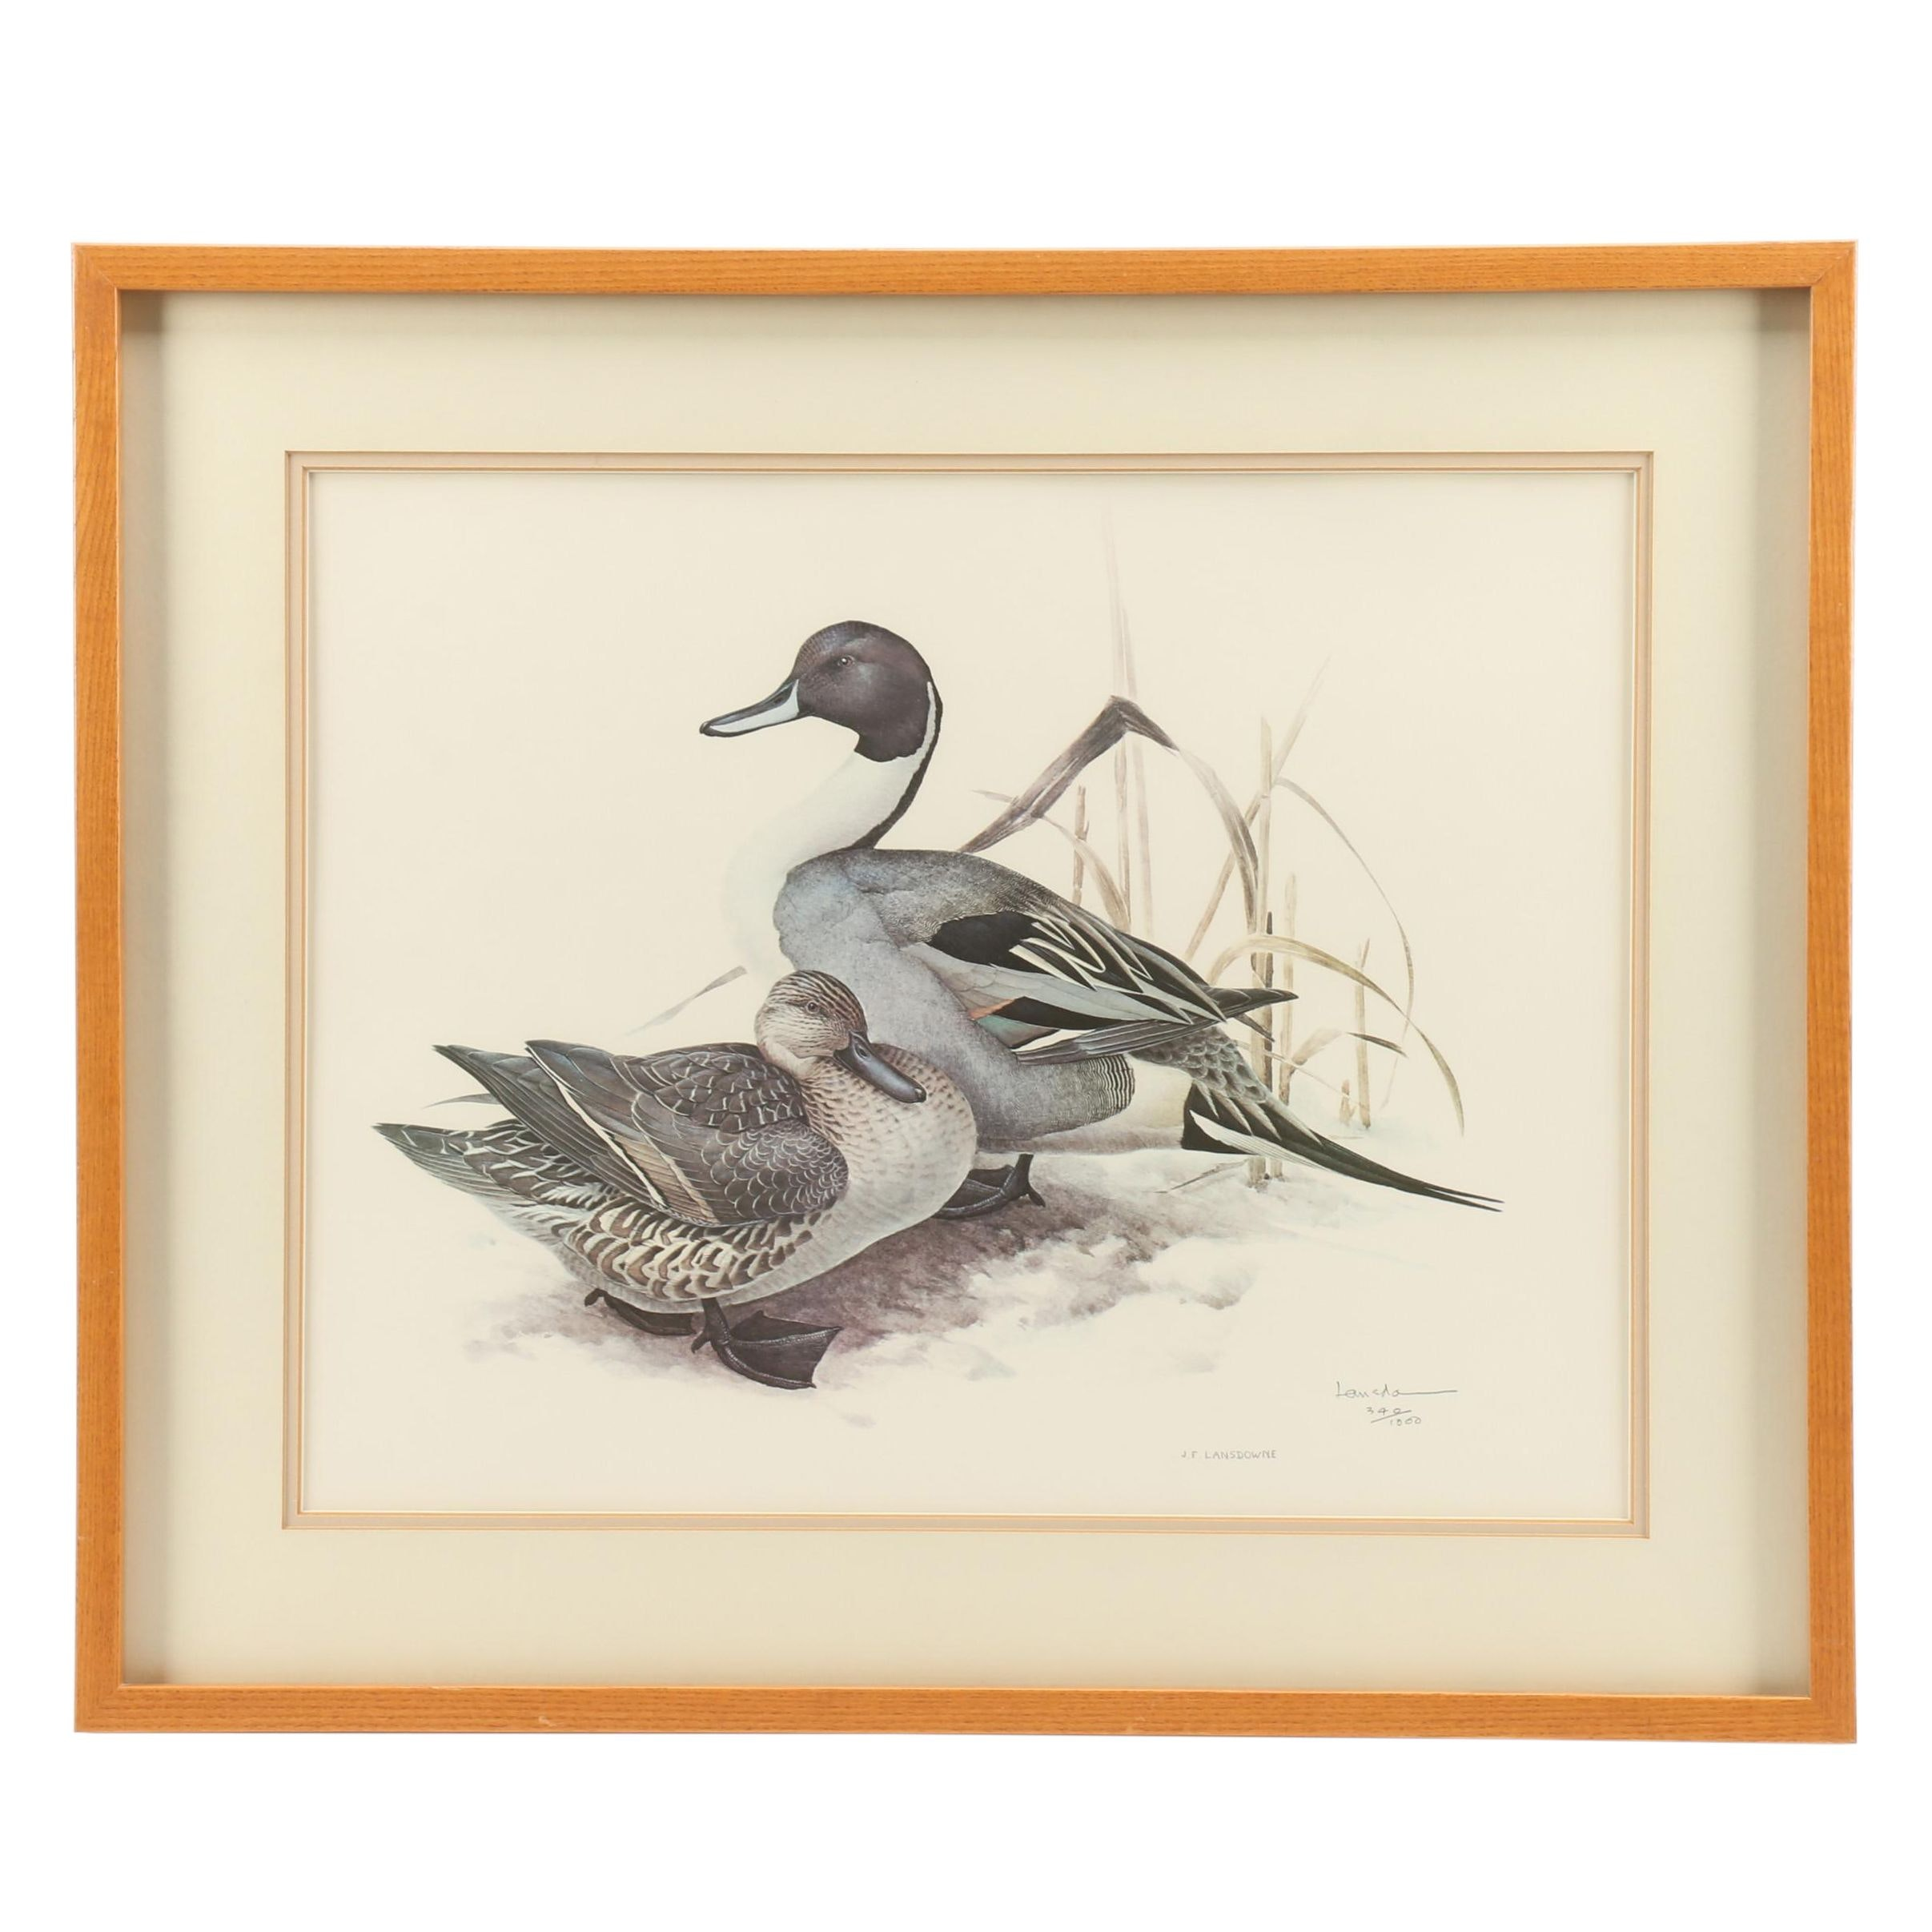 James F. Lansdowne Limited Edition Offset Lithograph of Ducks